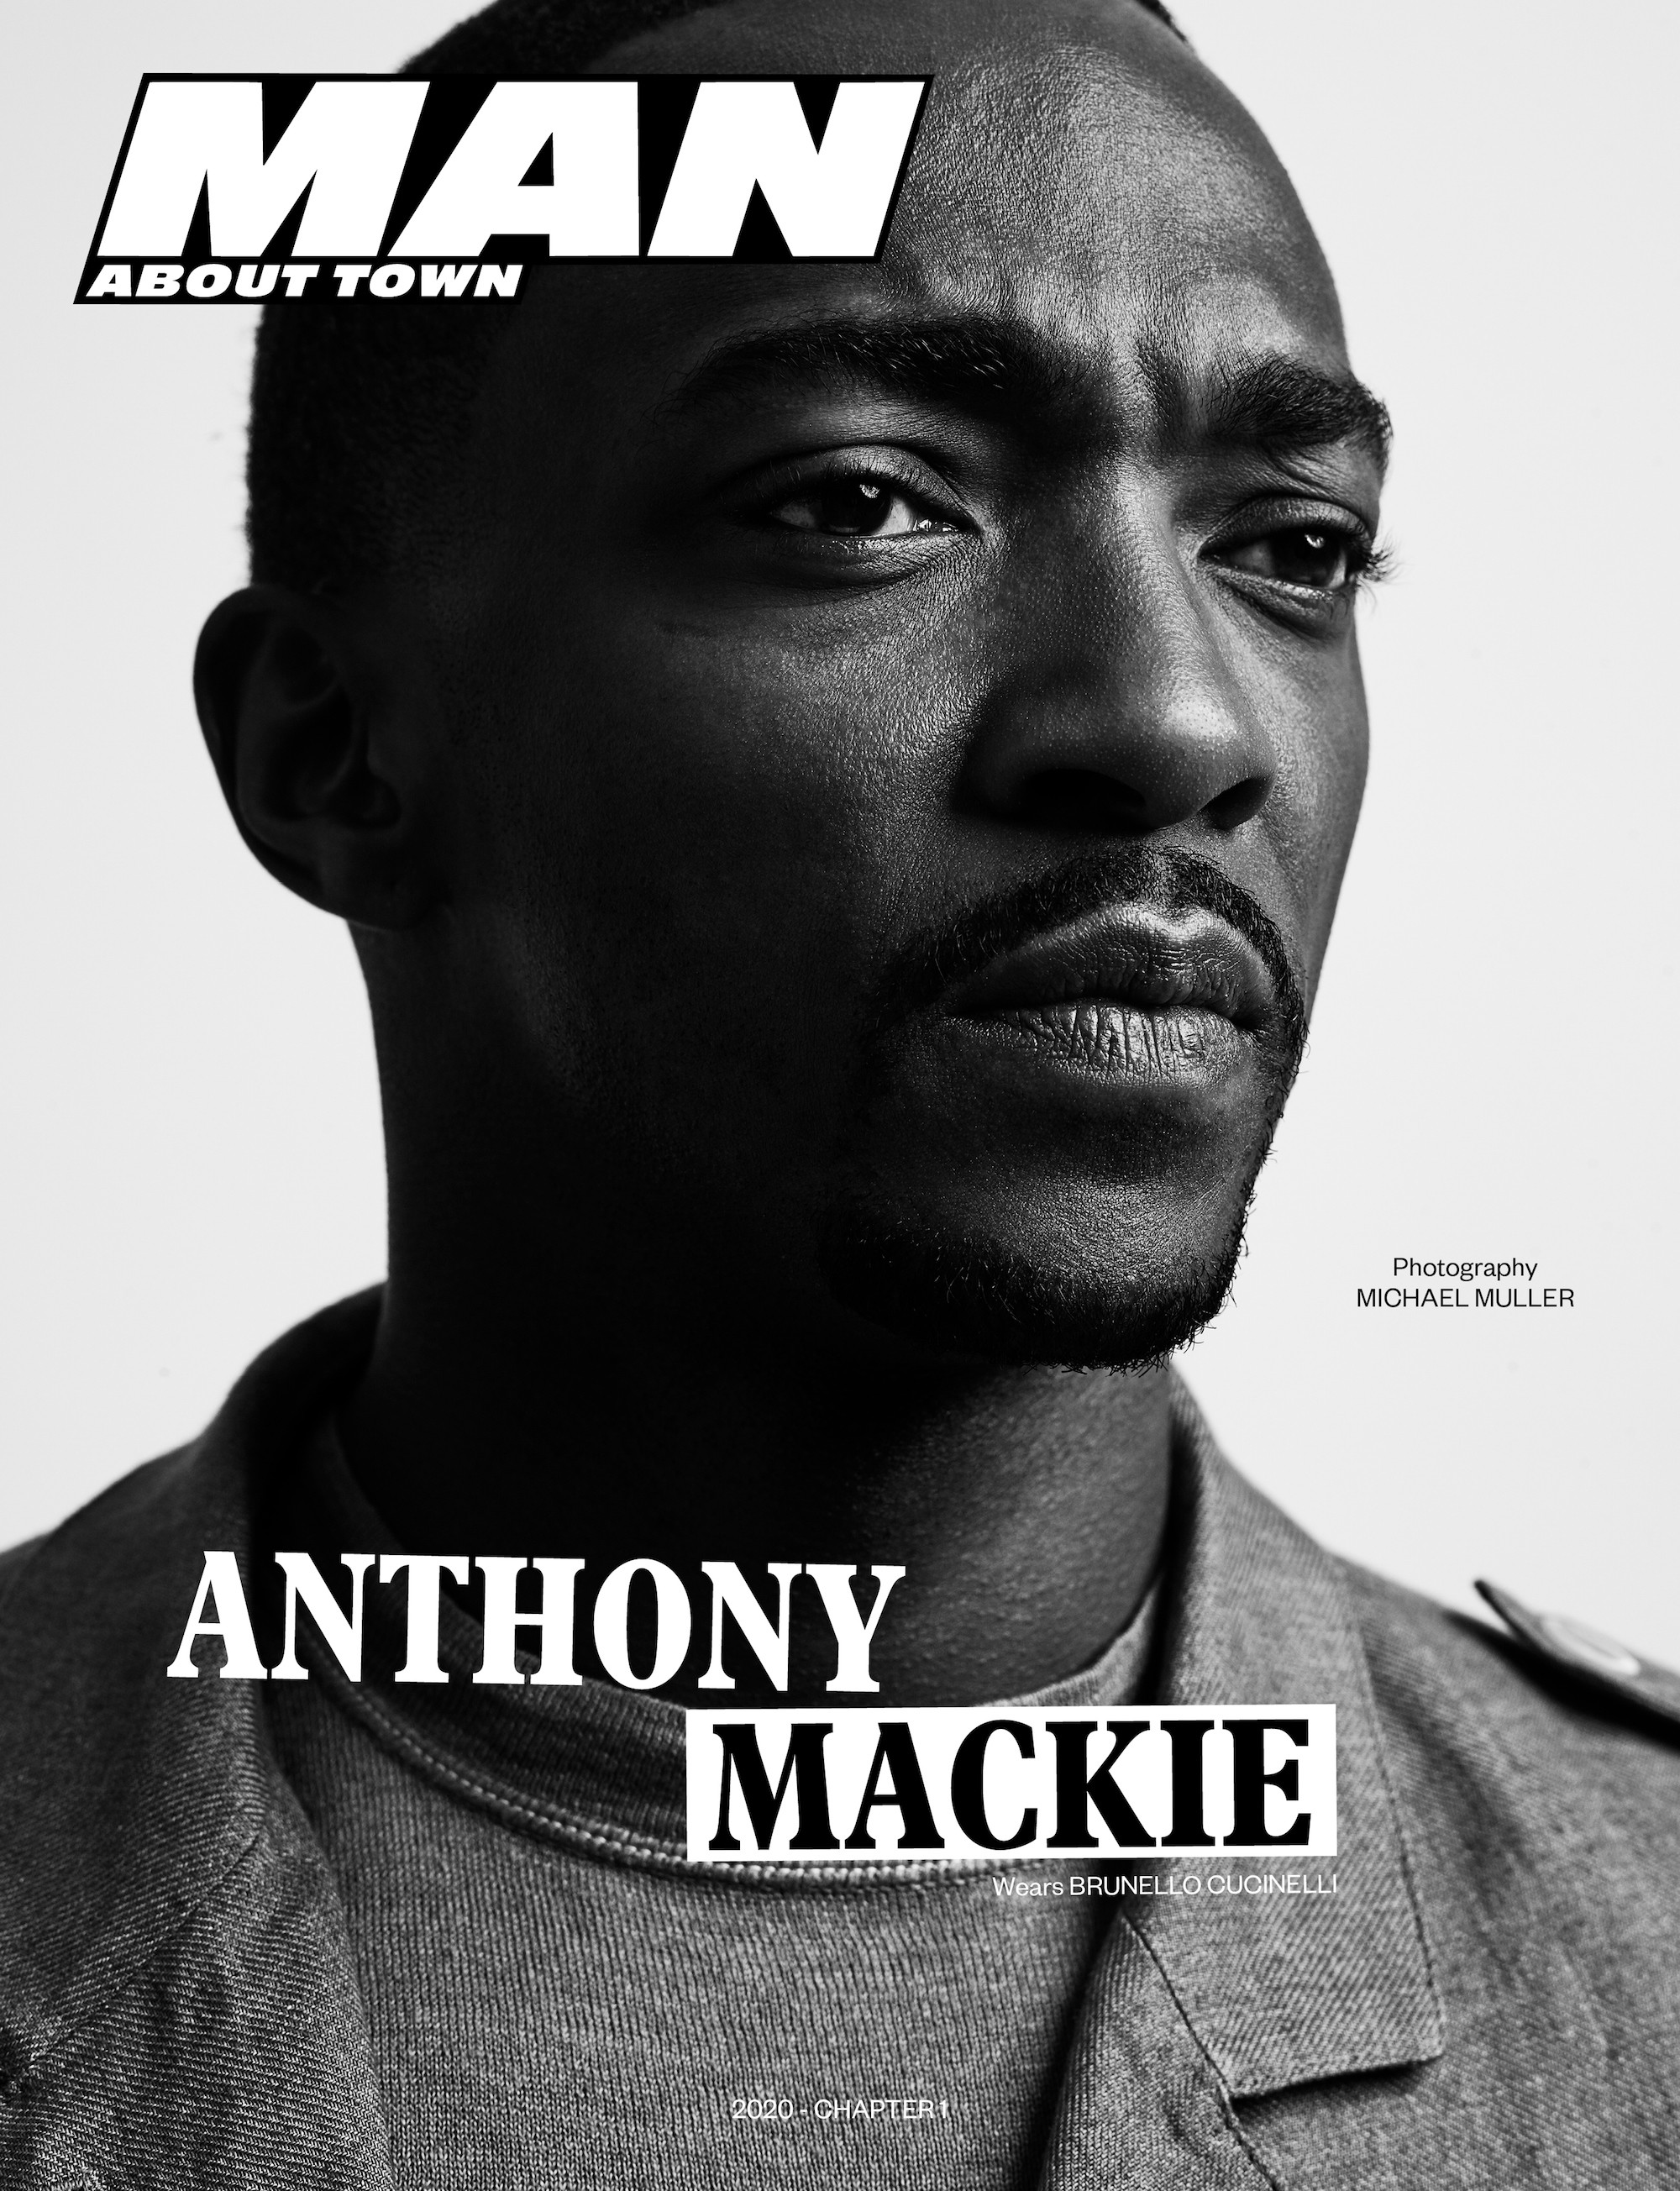 Anthony Mackie covers Man About Town